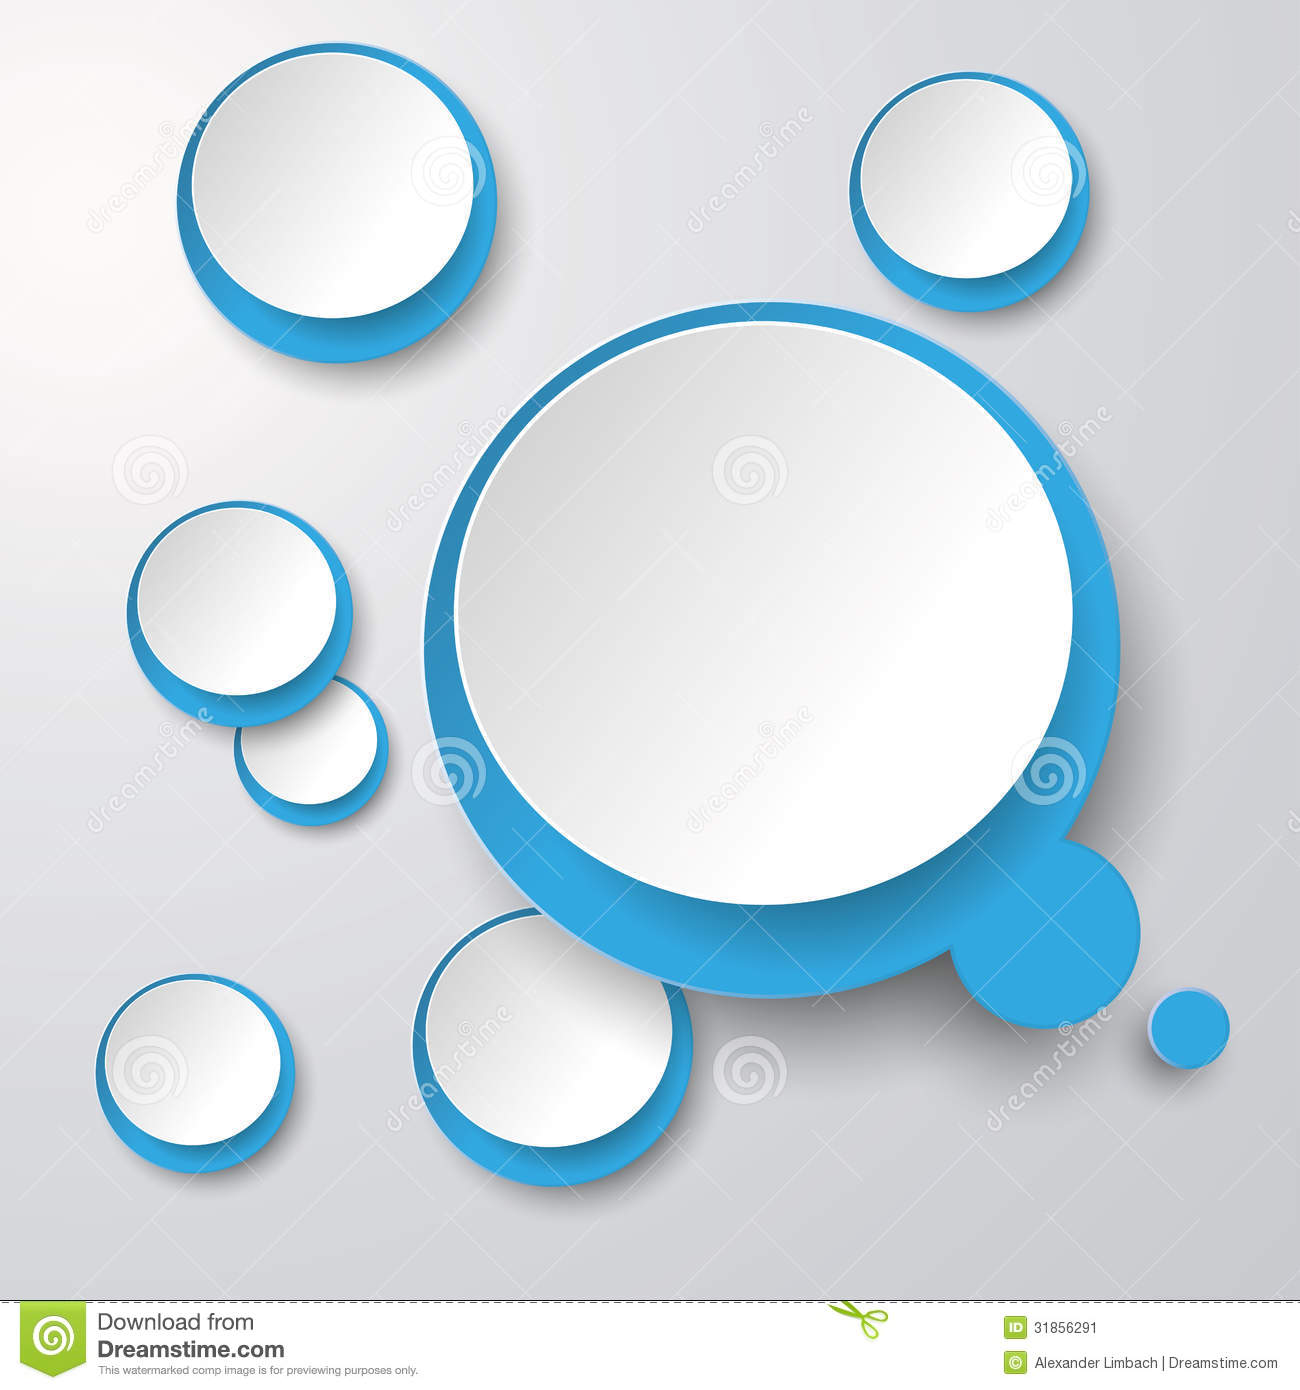 Infographic design on the grey background eps 10 vector file - Blue White Thought Bubble With Circles 2 Stock Image